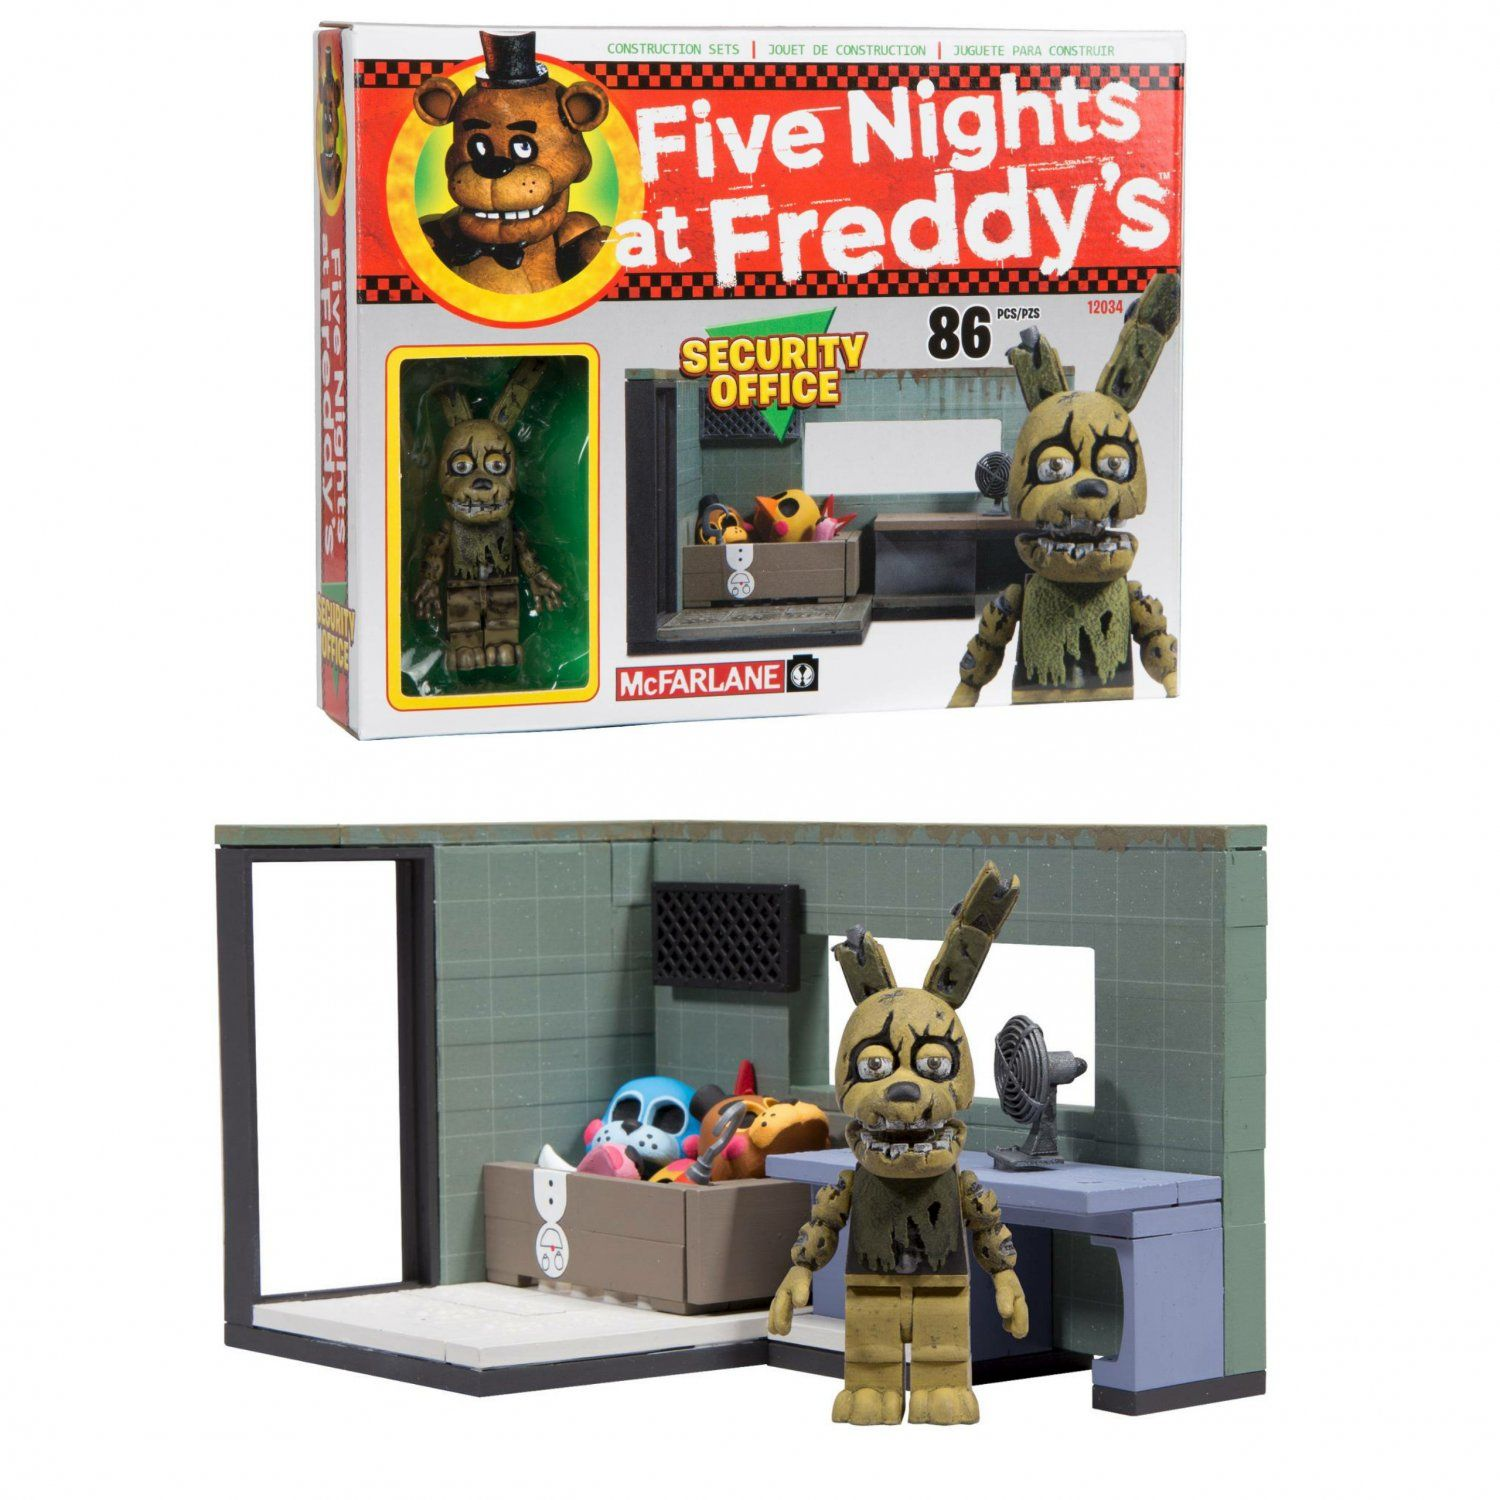 More five nights at freddy s construction sets coming soon - Five Nights At Freddy S Fnaf Mcfarlane Security Office With Springtrap Buildable Construction Set